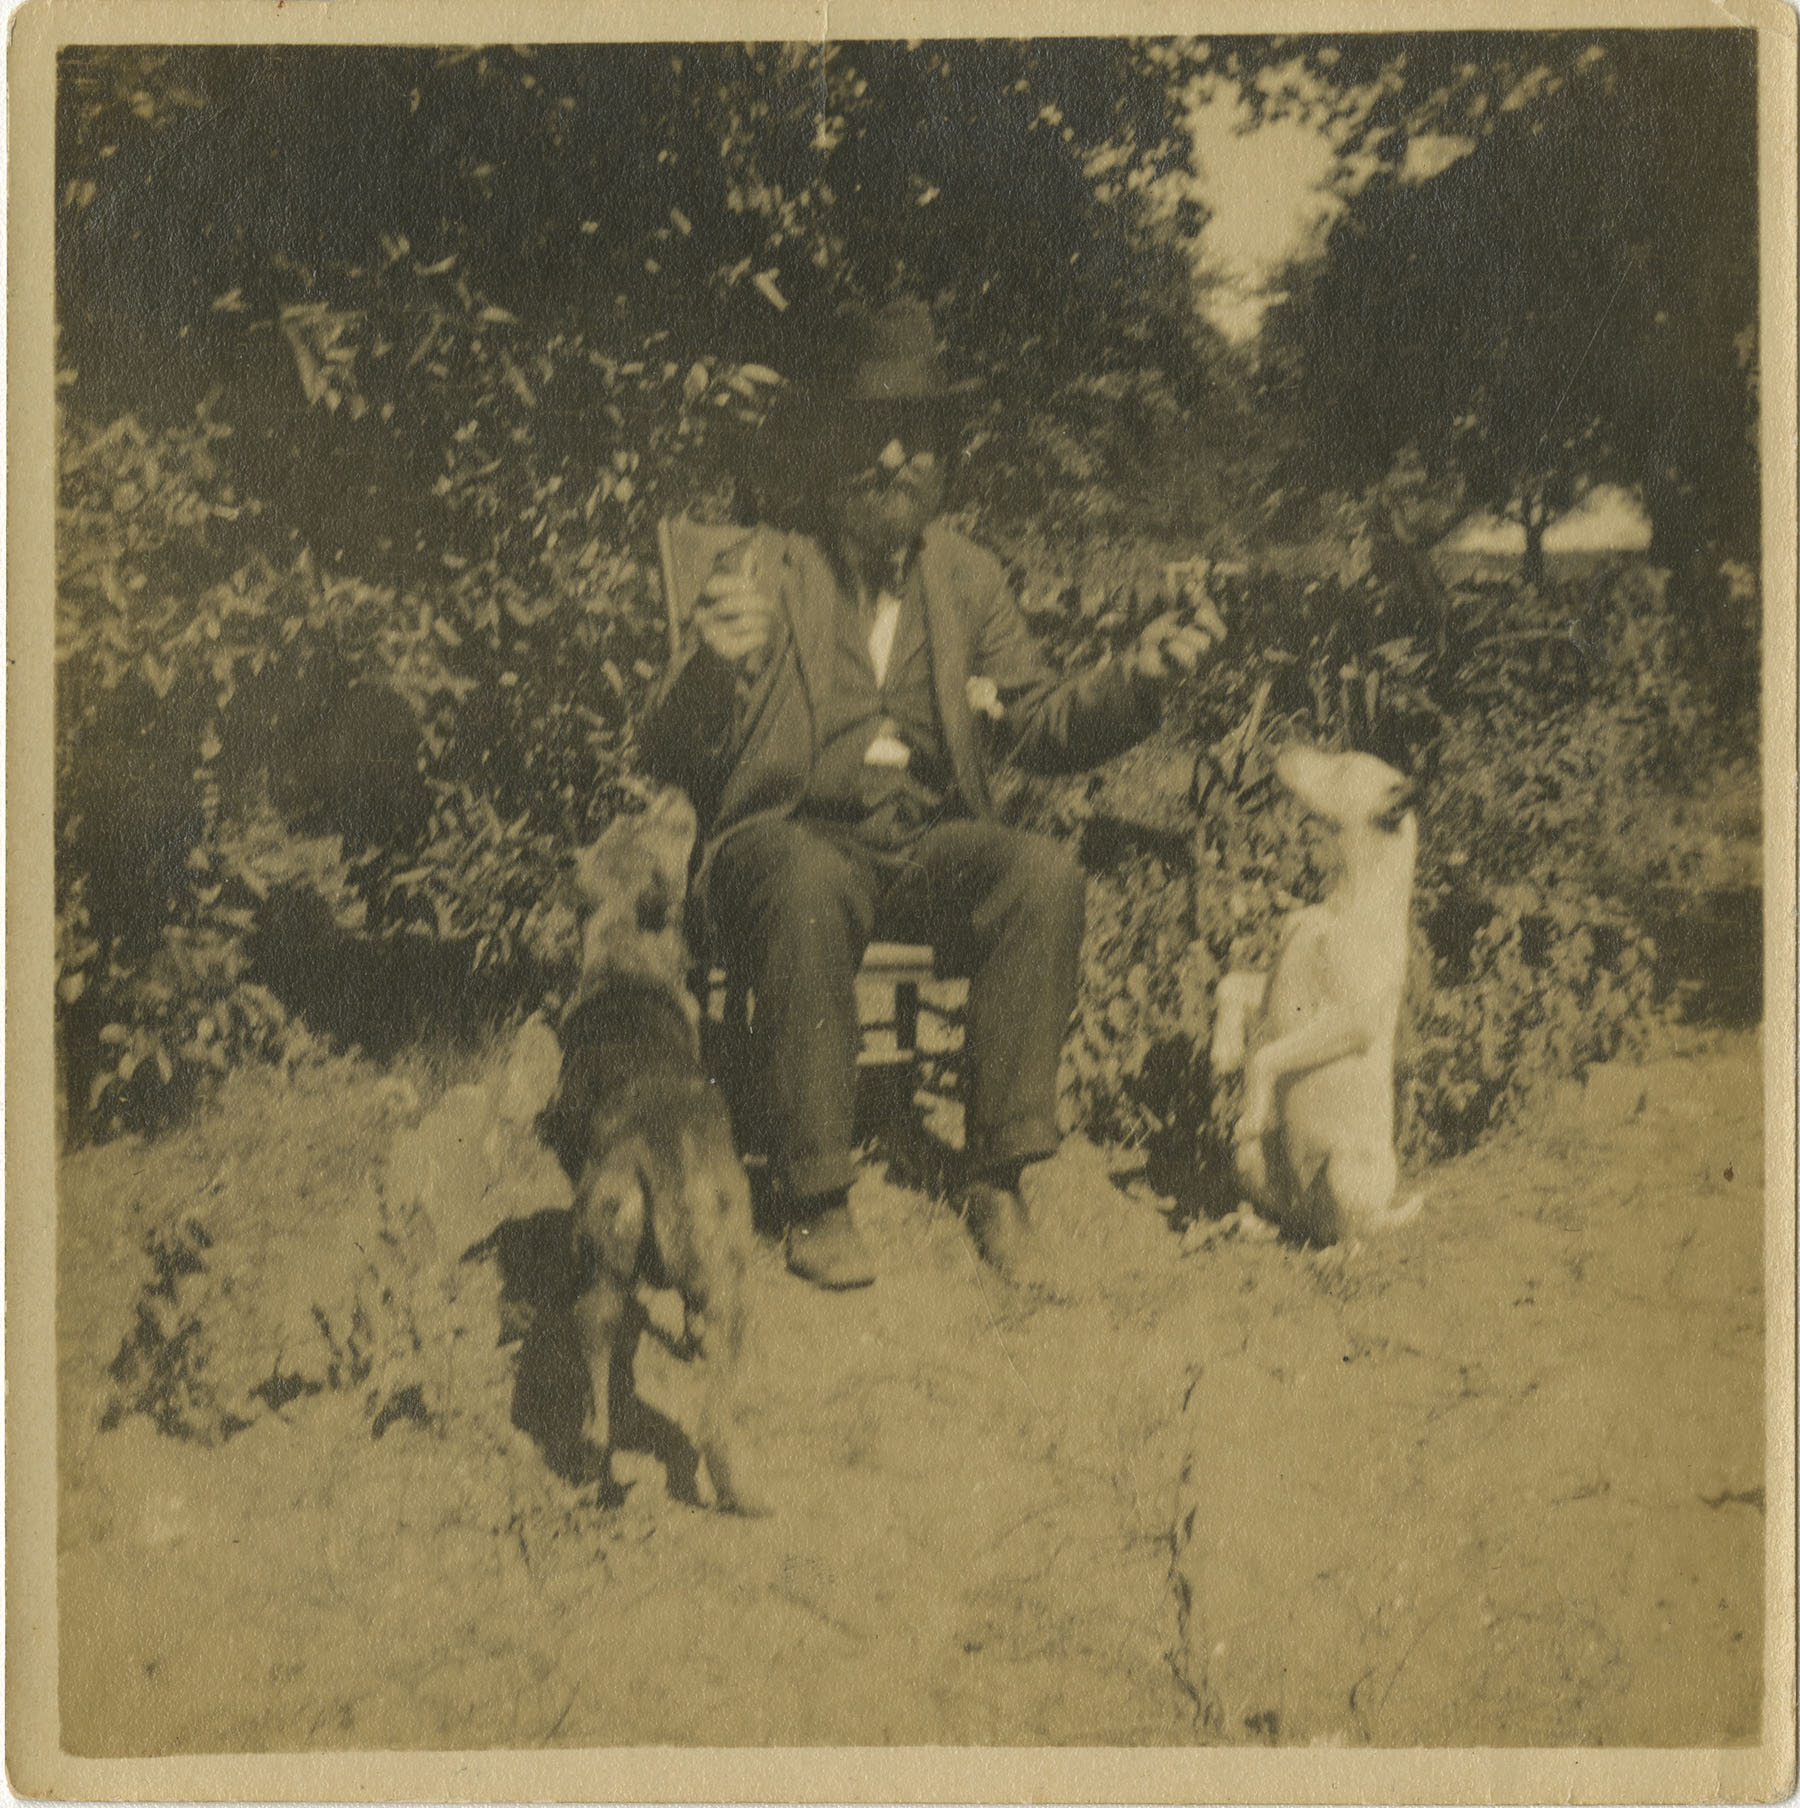 William Ellis McLeod with two dogs